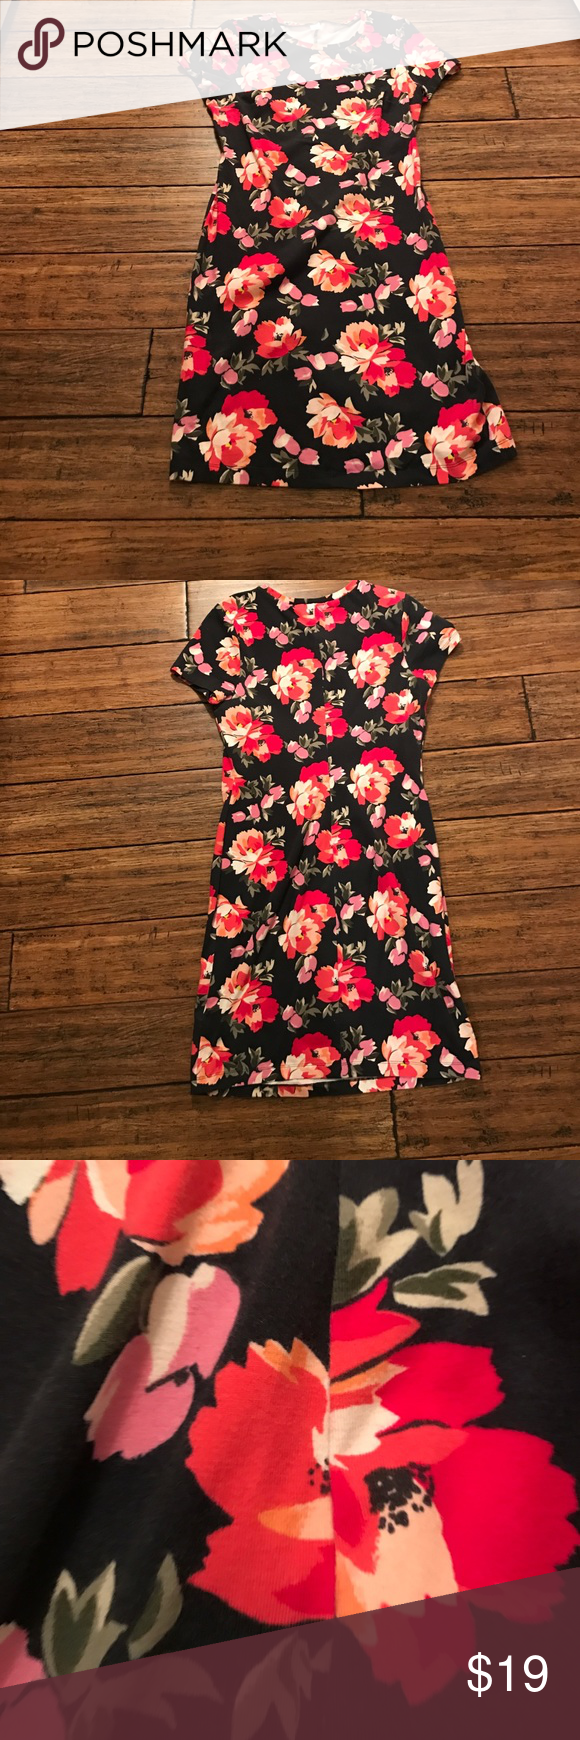 """Old Navy Floral Print Short Sleeve Dress Pretty floral print shirt sleeve dress from Old Navy. Only worn a couple of times. Floral print is on a navy background. 93% cotton, 7% spandex. This has a lot of stretch to it. Approx. 36"""" long. 17"""" armpit to armpit, 15"""" across waist, and 15"""" across hips. Old Navy Dresses"""